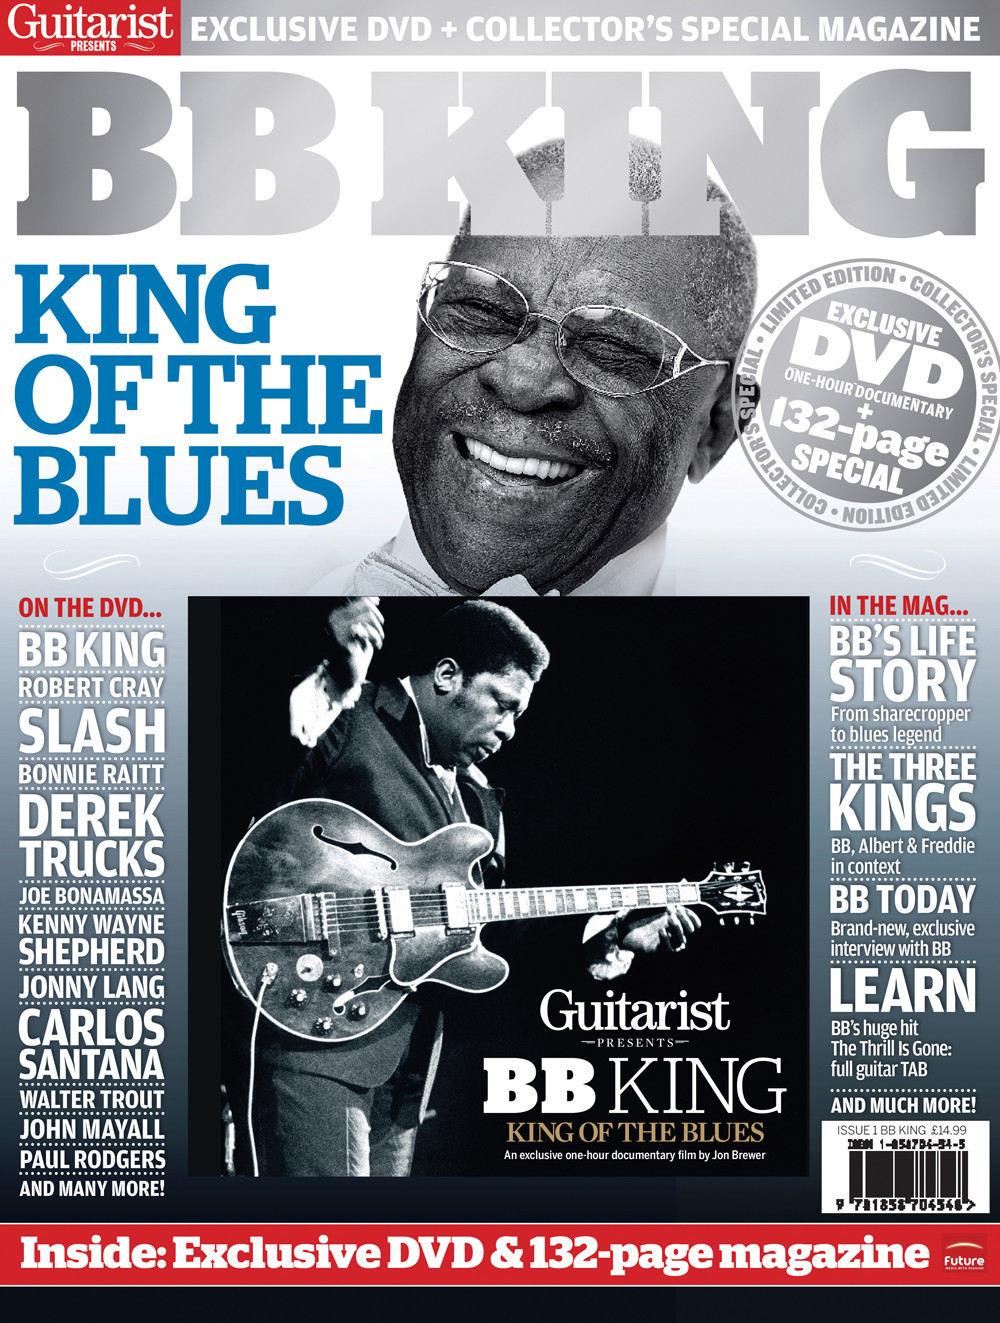 BB-King-DVD-Fanpack-Cover-Image